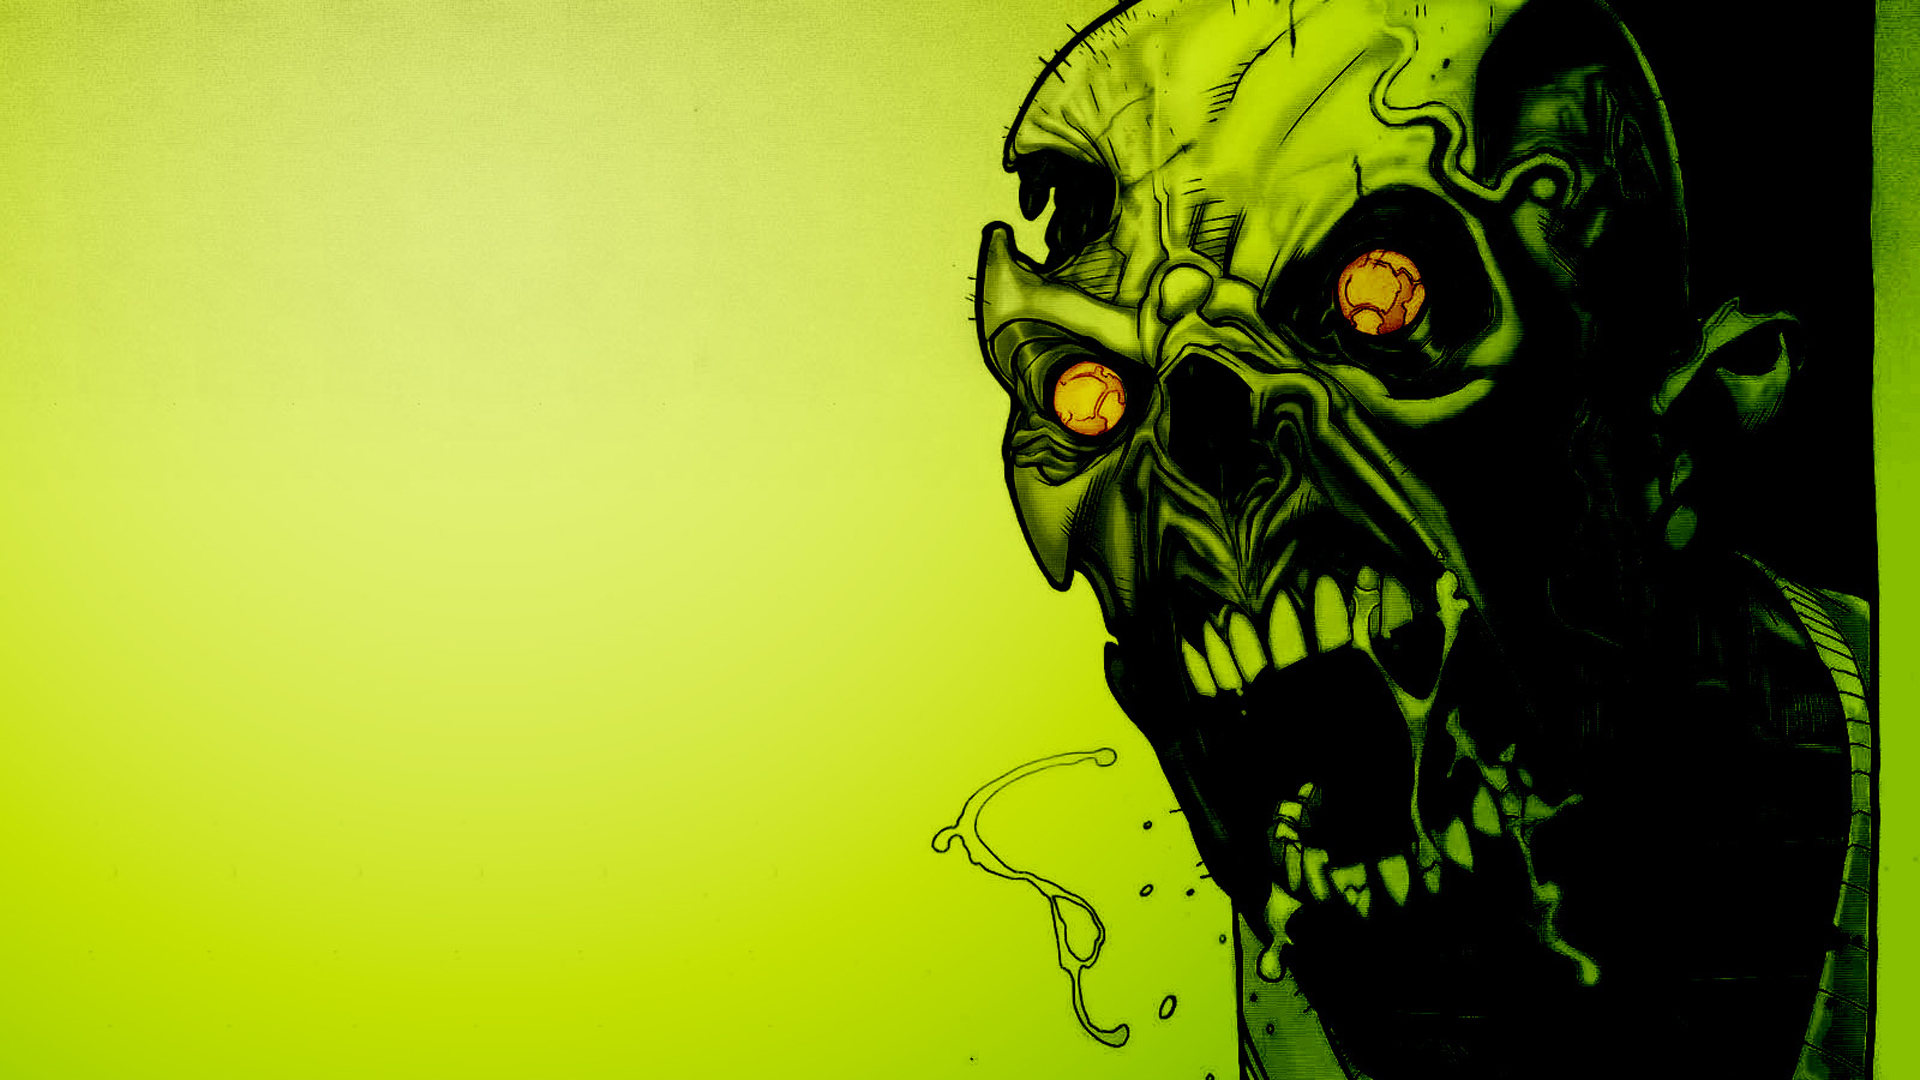 Zombie Wallpapers